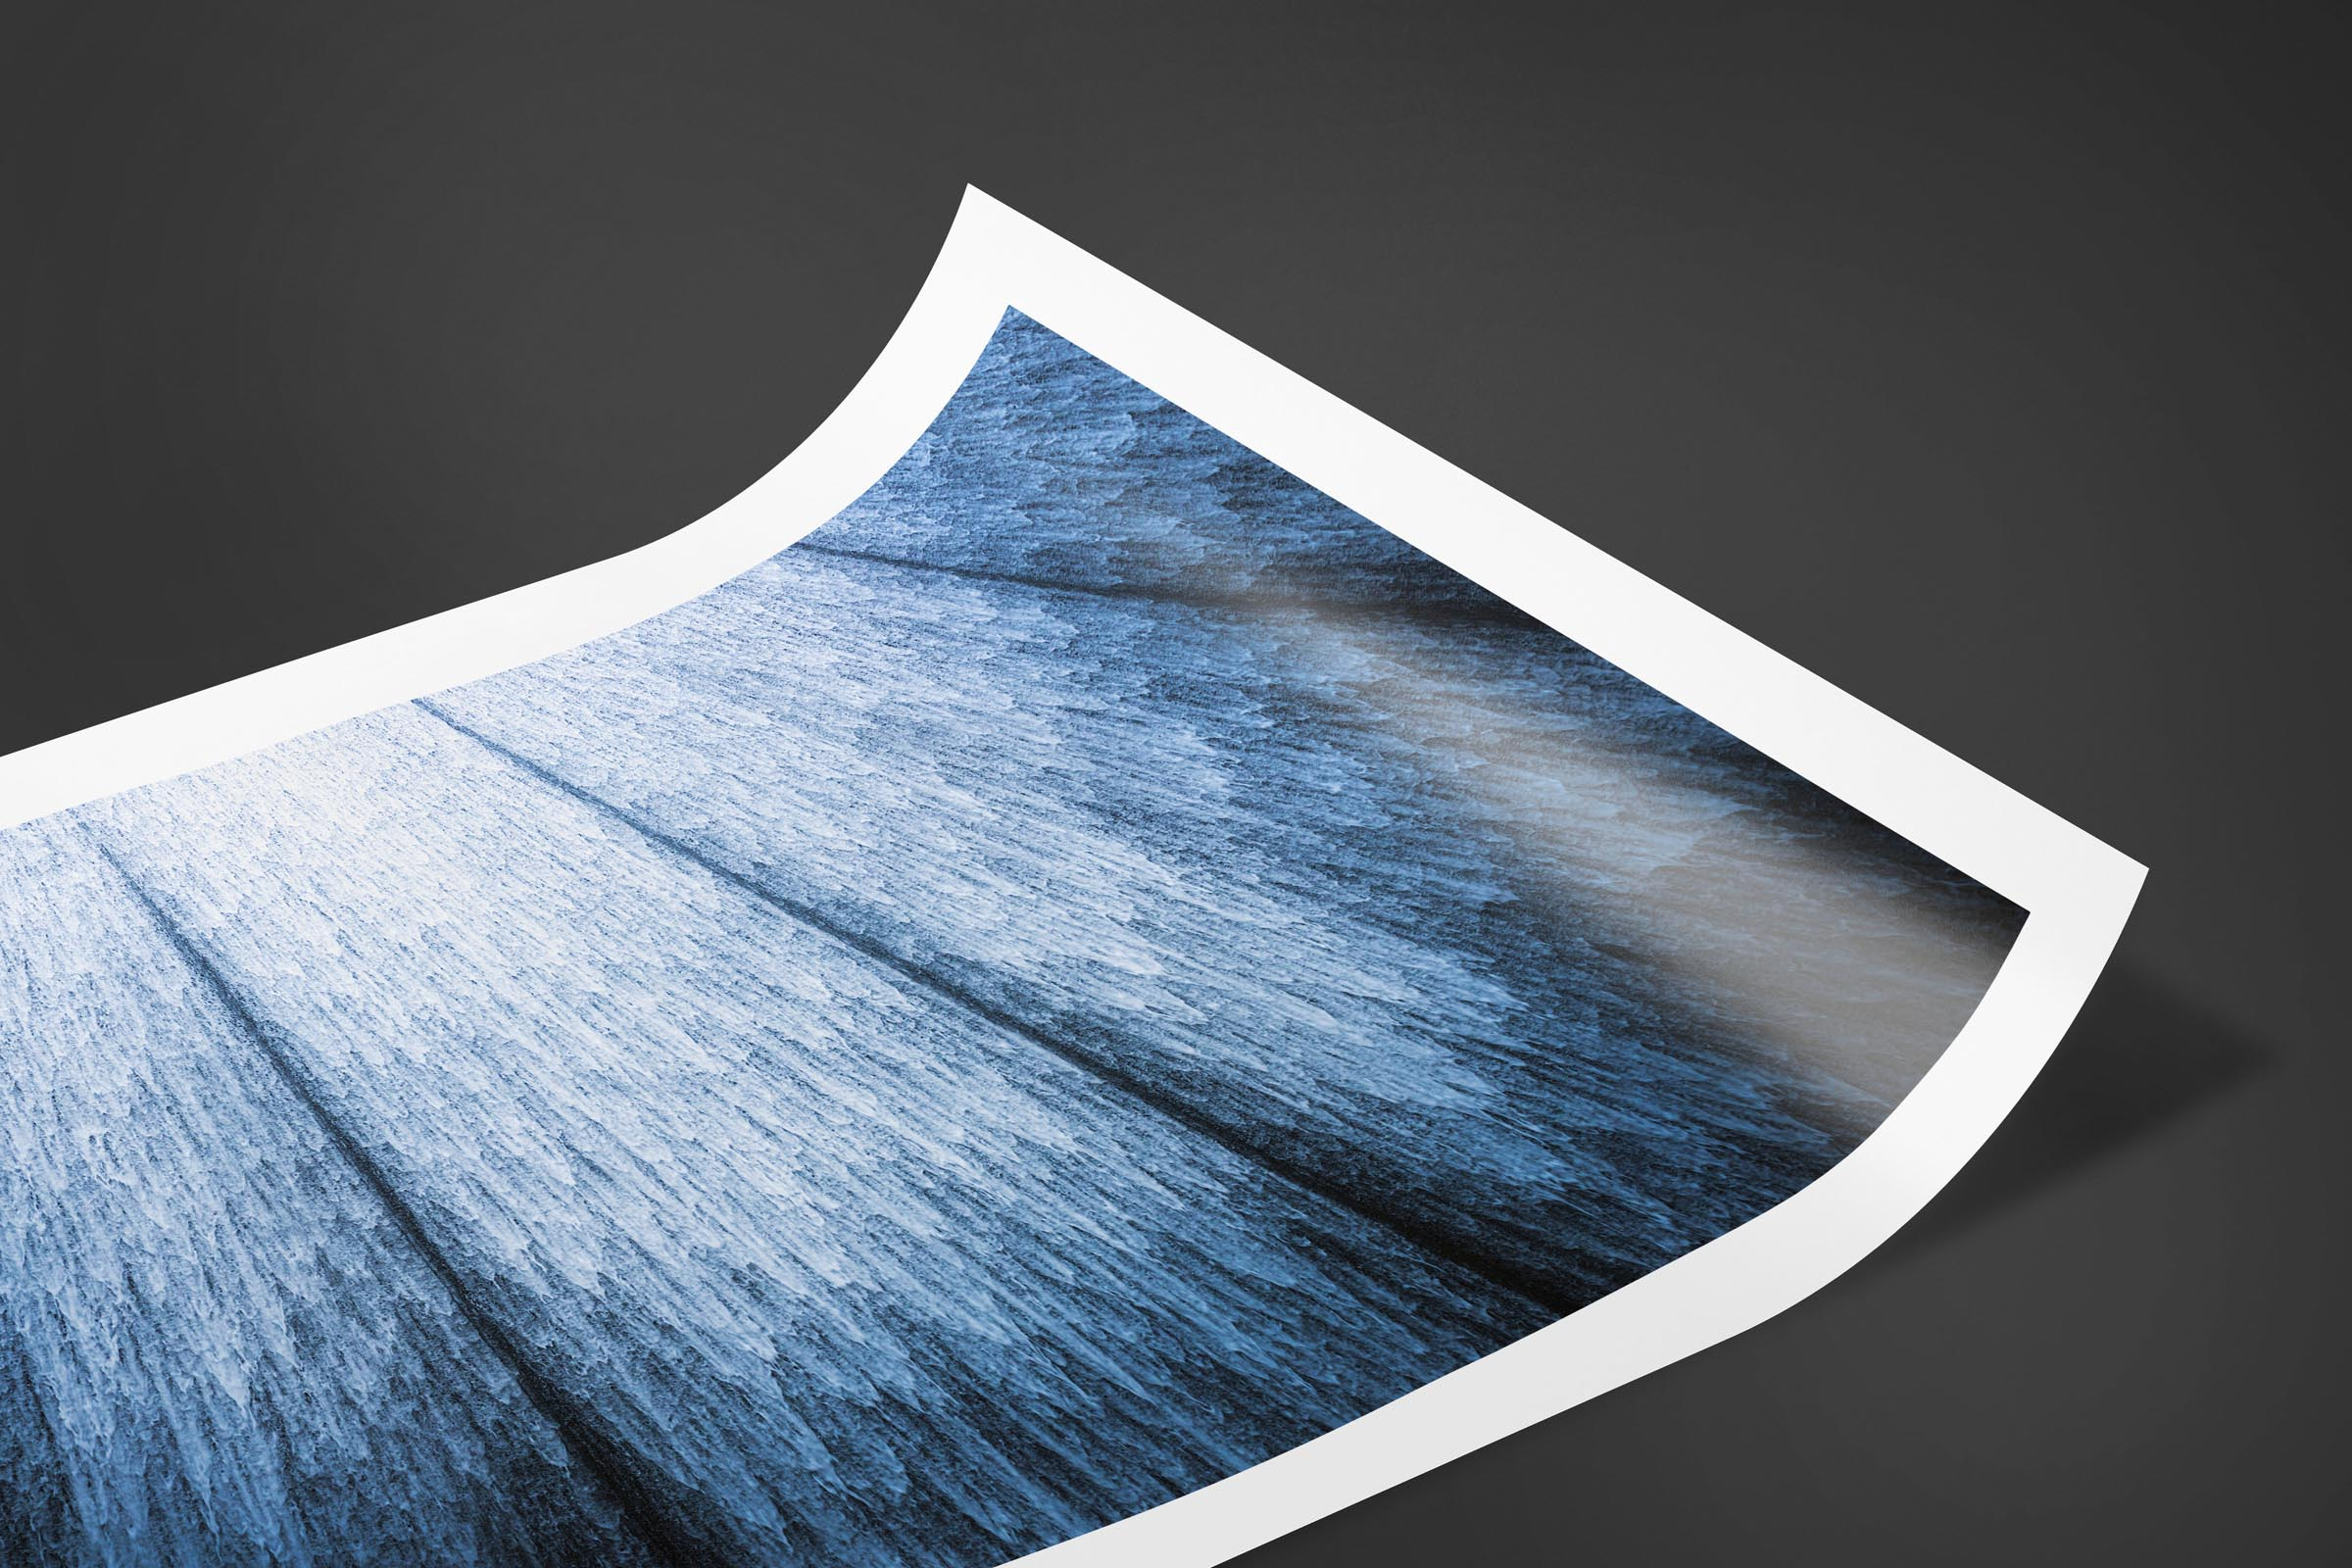 Fine art limited edition print of Waterwall in Houston, Texas by Brent Goldman Photography